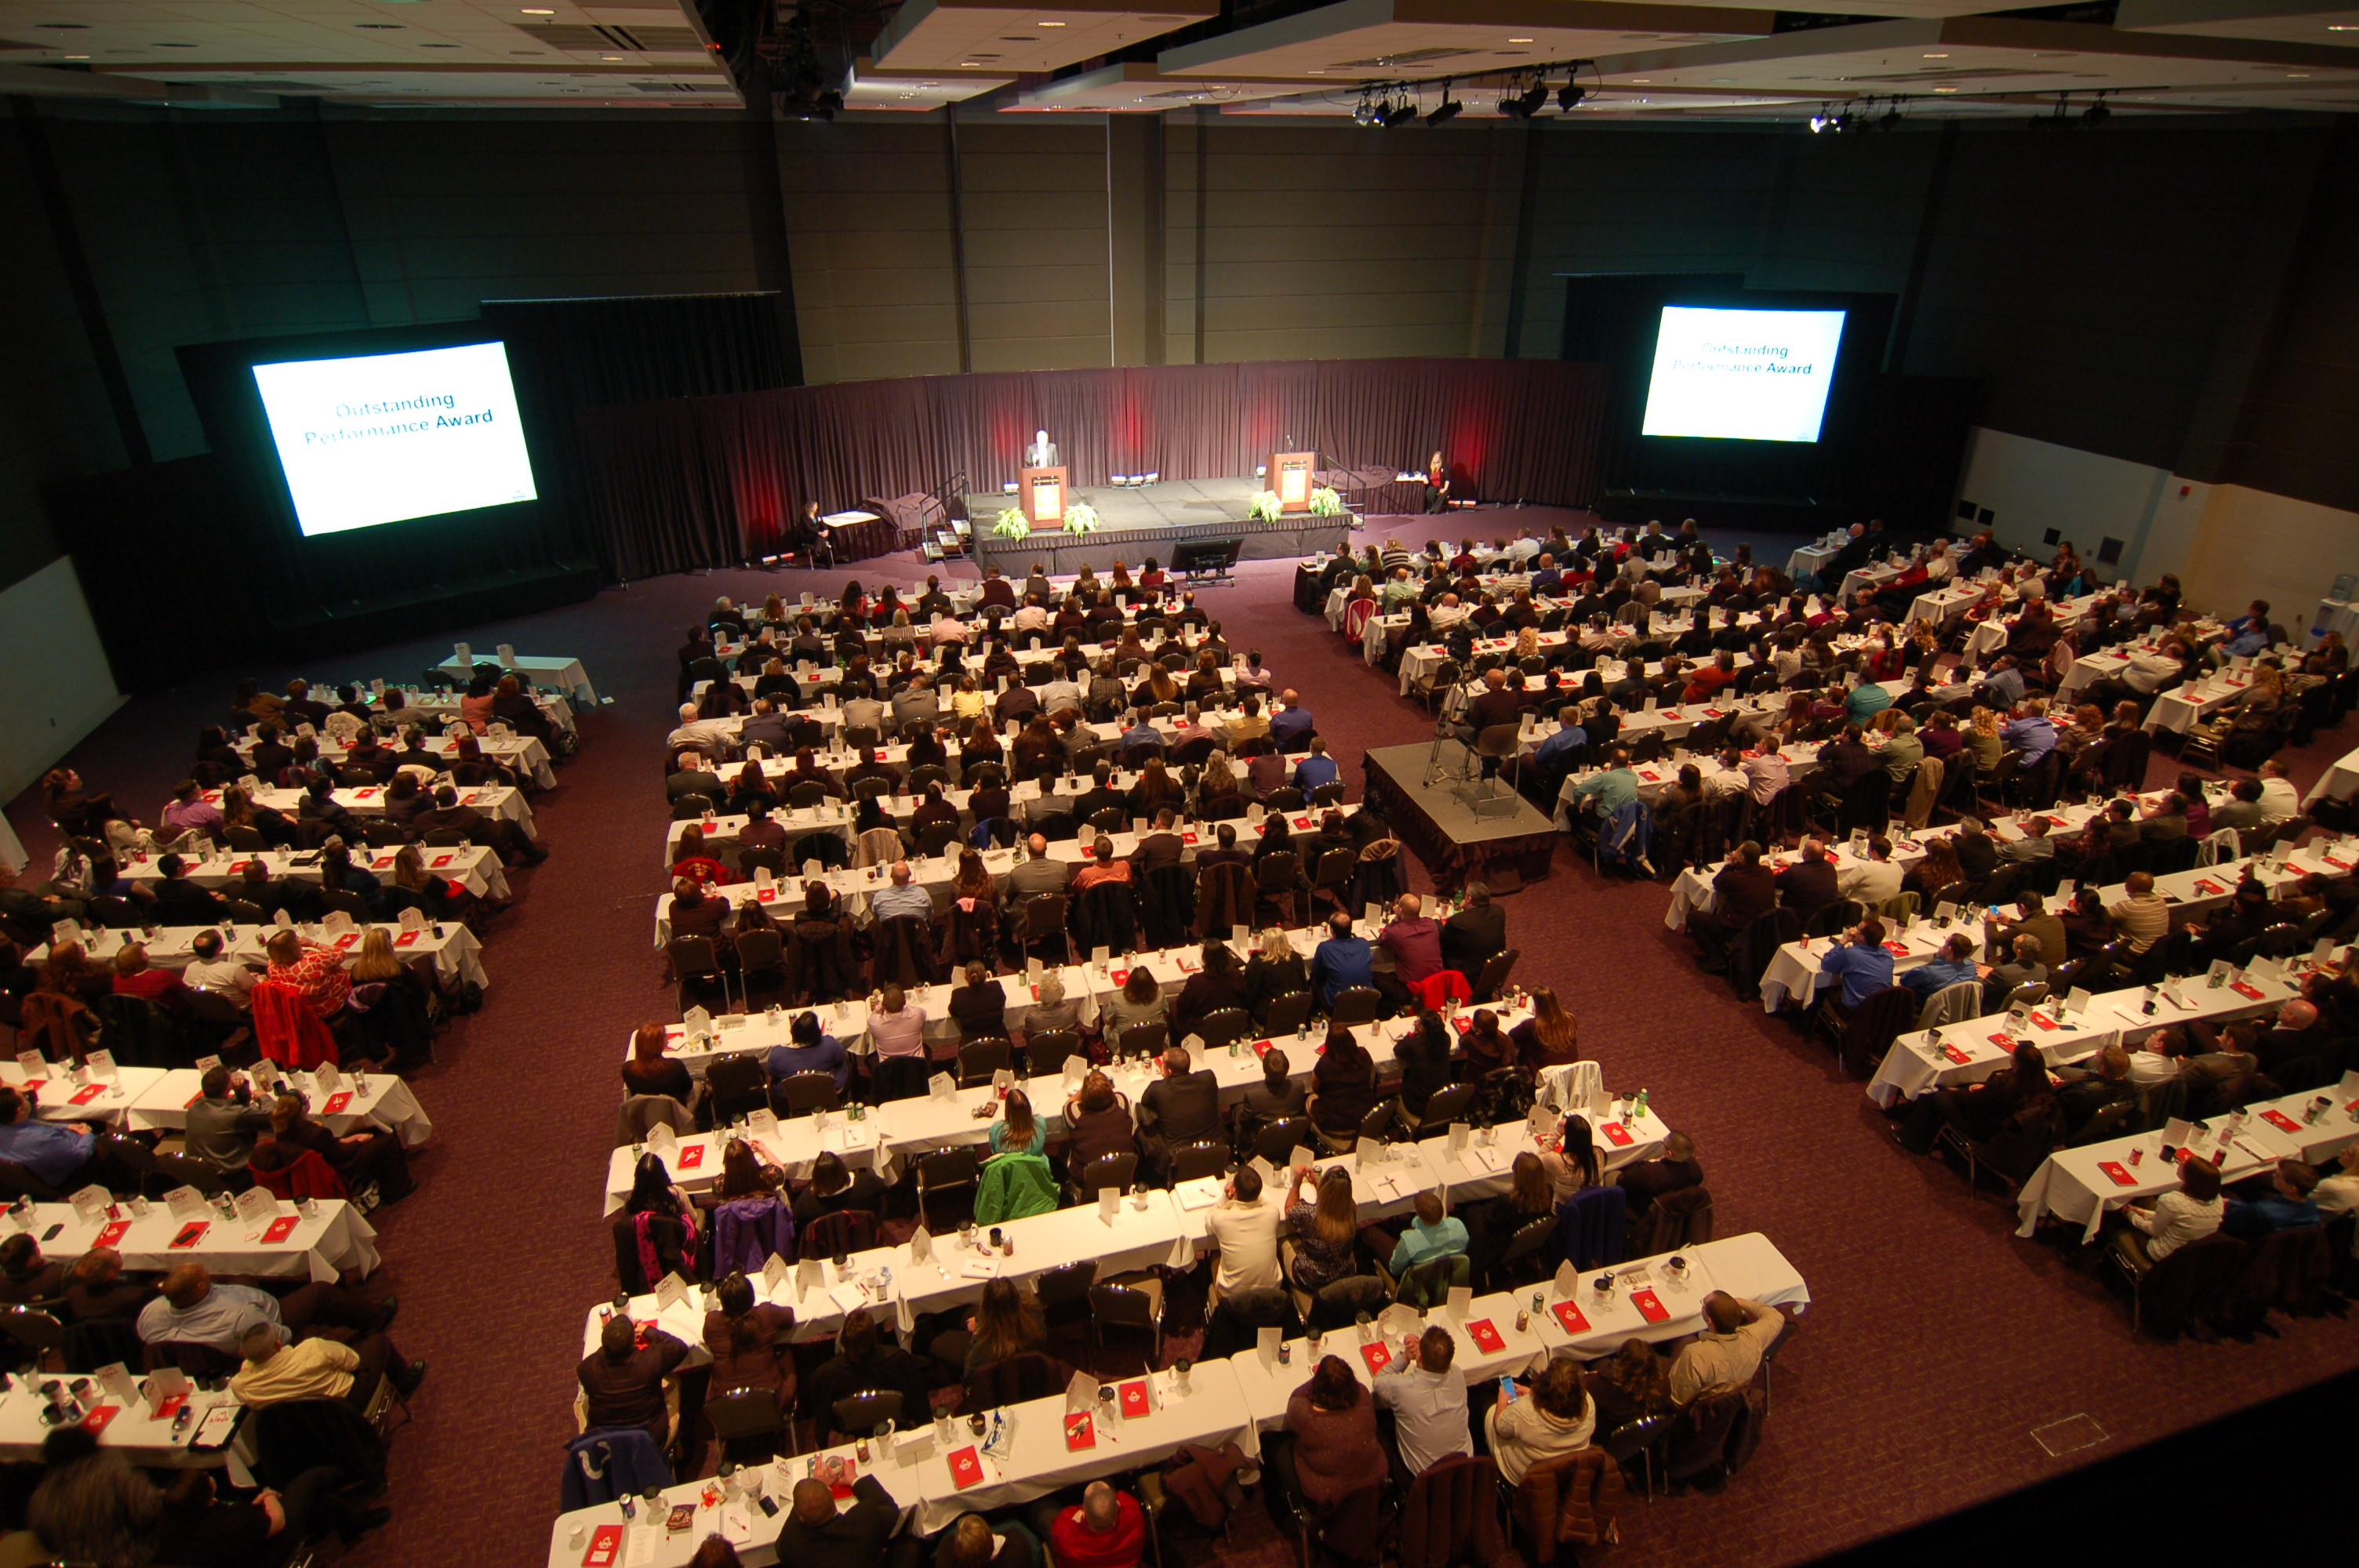 Image of Anthony Wayne Ballroom